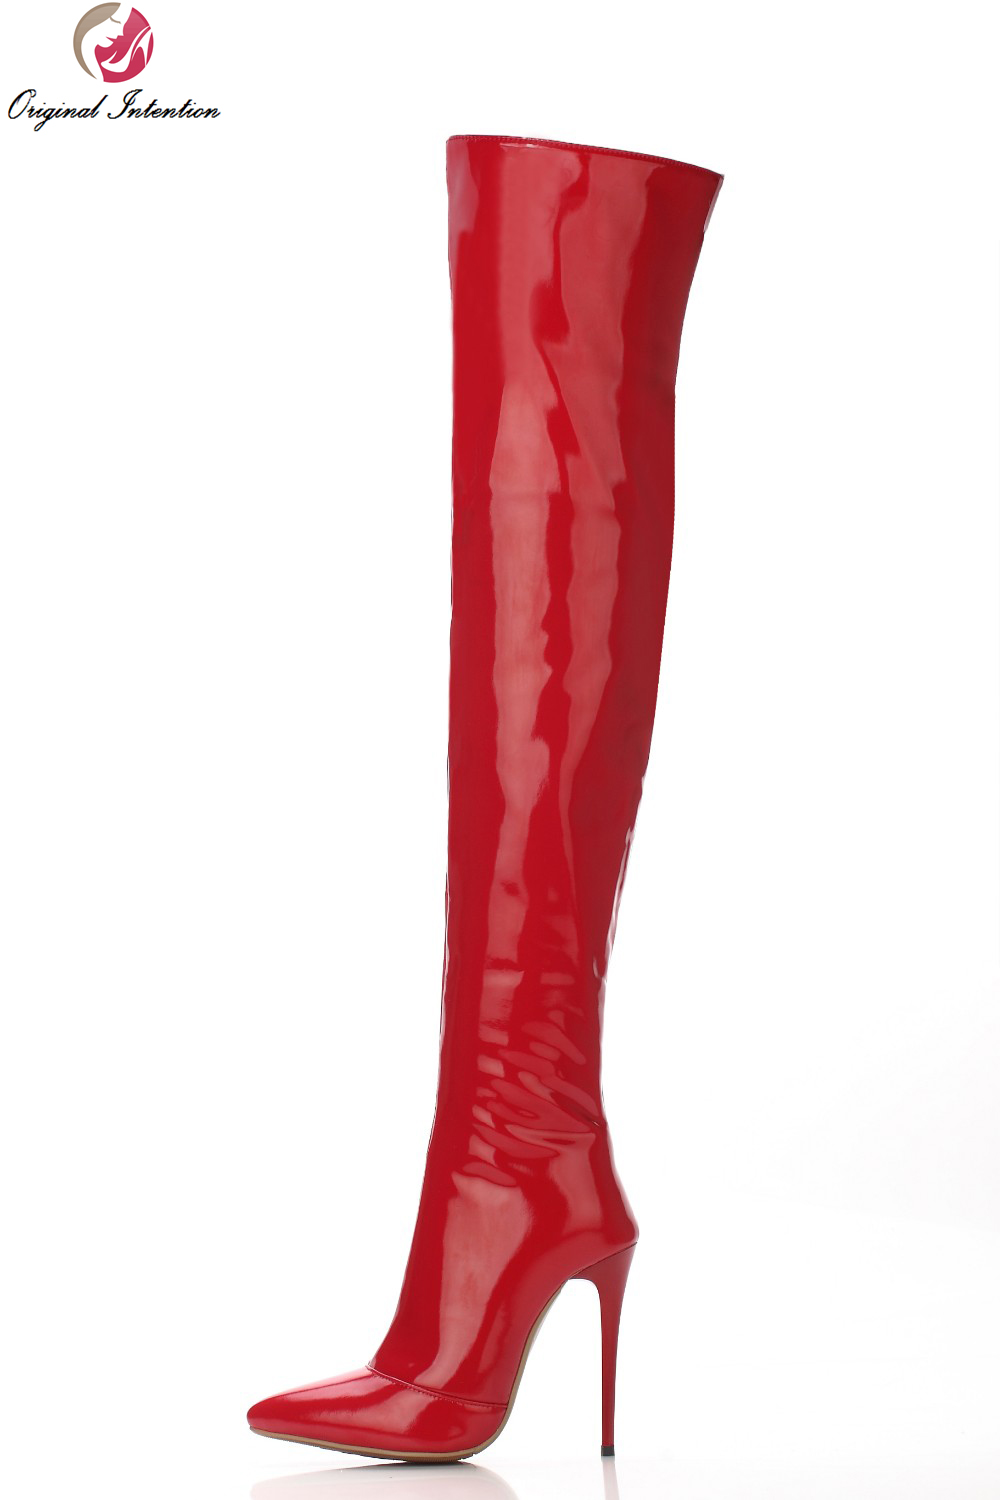 Original Intention New Sexy Women Over Knee Boots Pointed Toe Thin Heels Boots Black Red Shoes Woman US Size 4-10.5 customizable fashion women knee high boots sexy pointed toe thin heels leopard boots shoes woman plus size 4 15